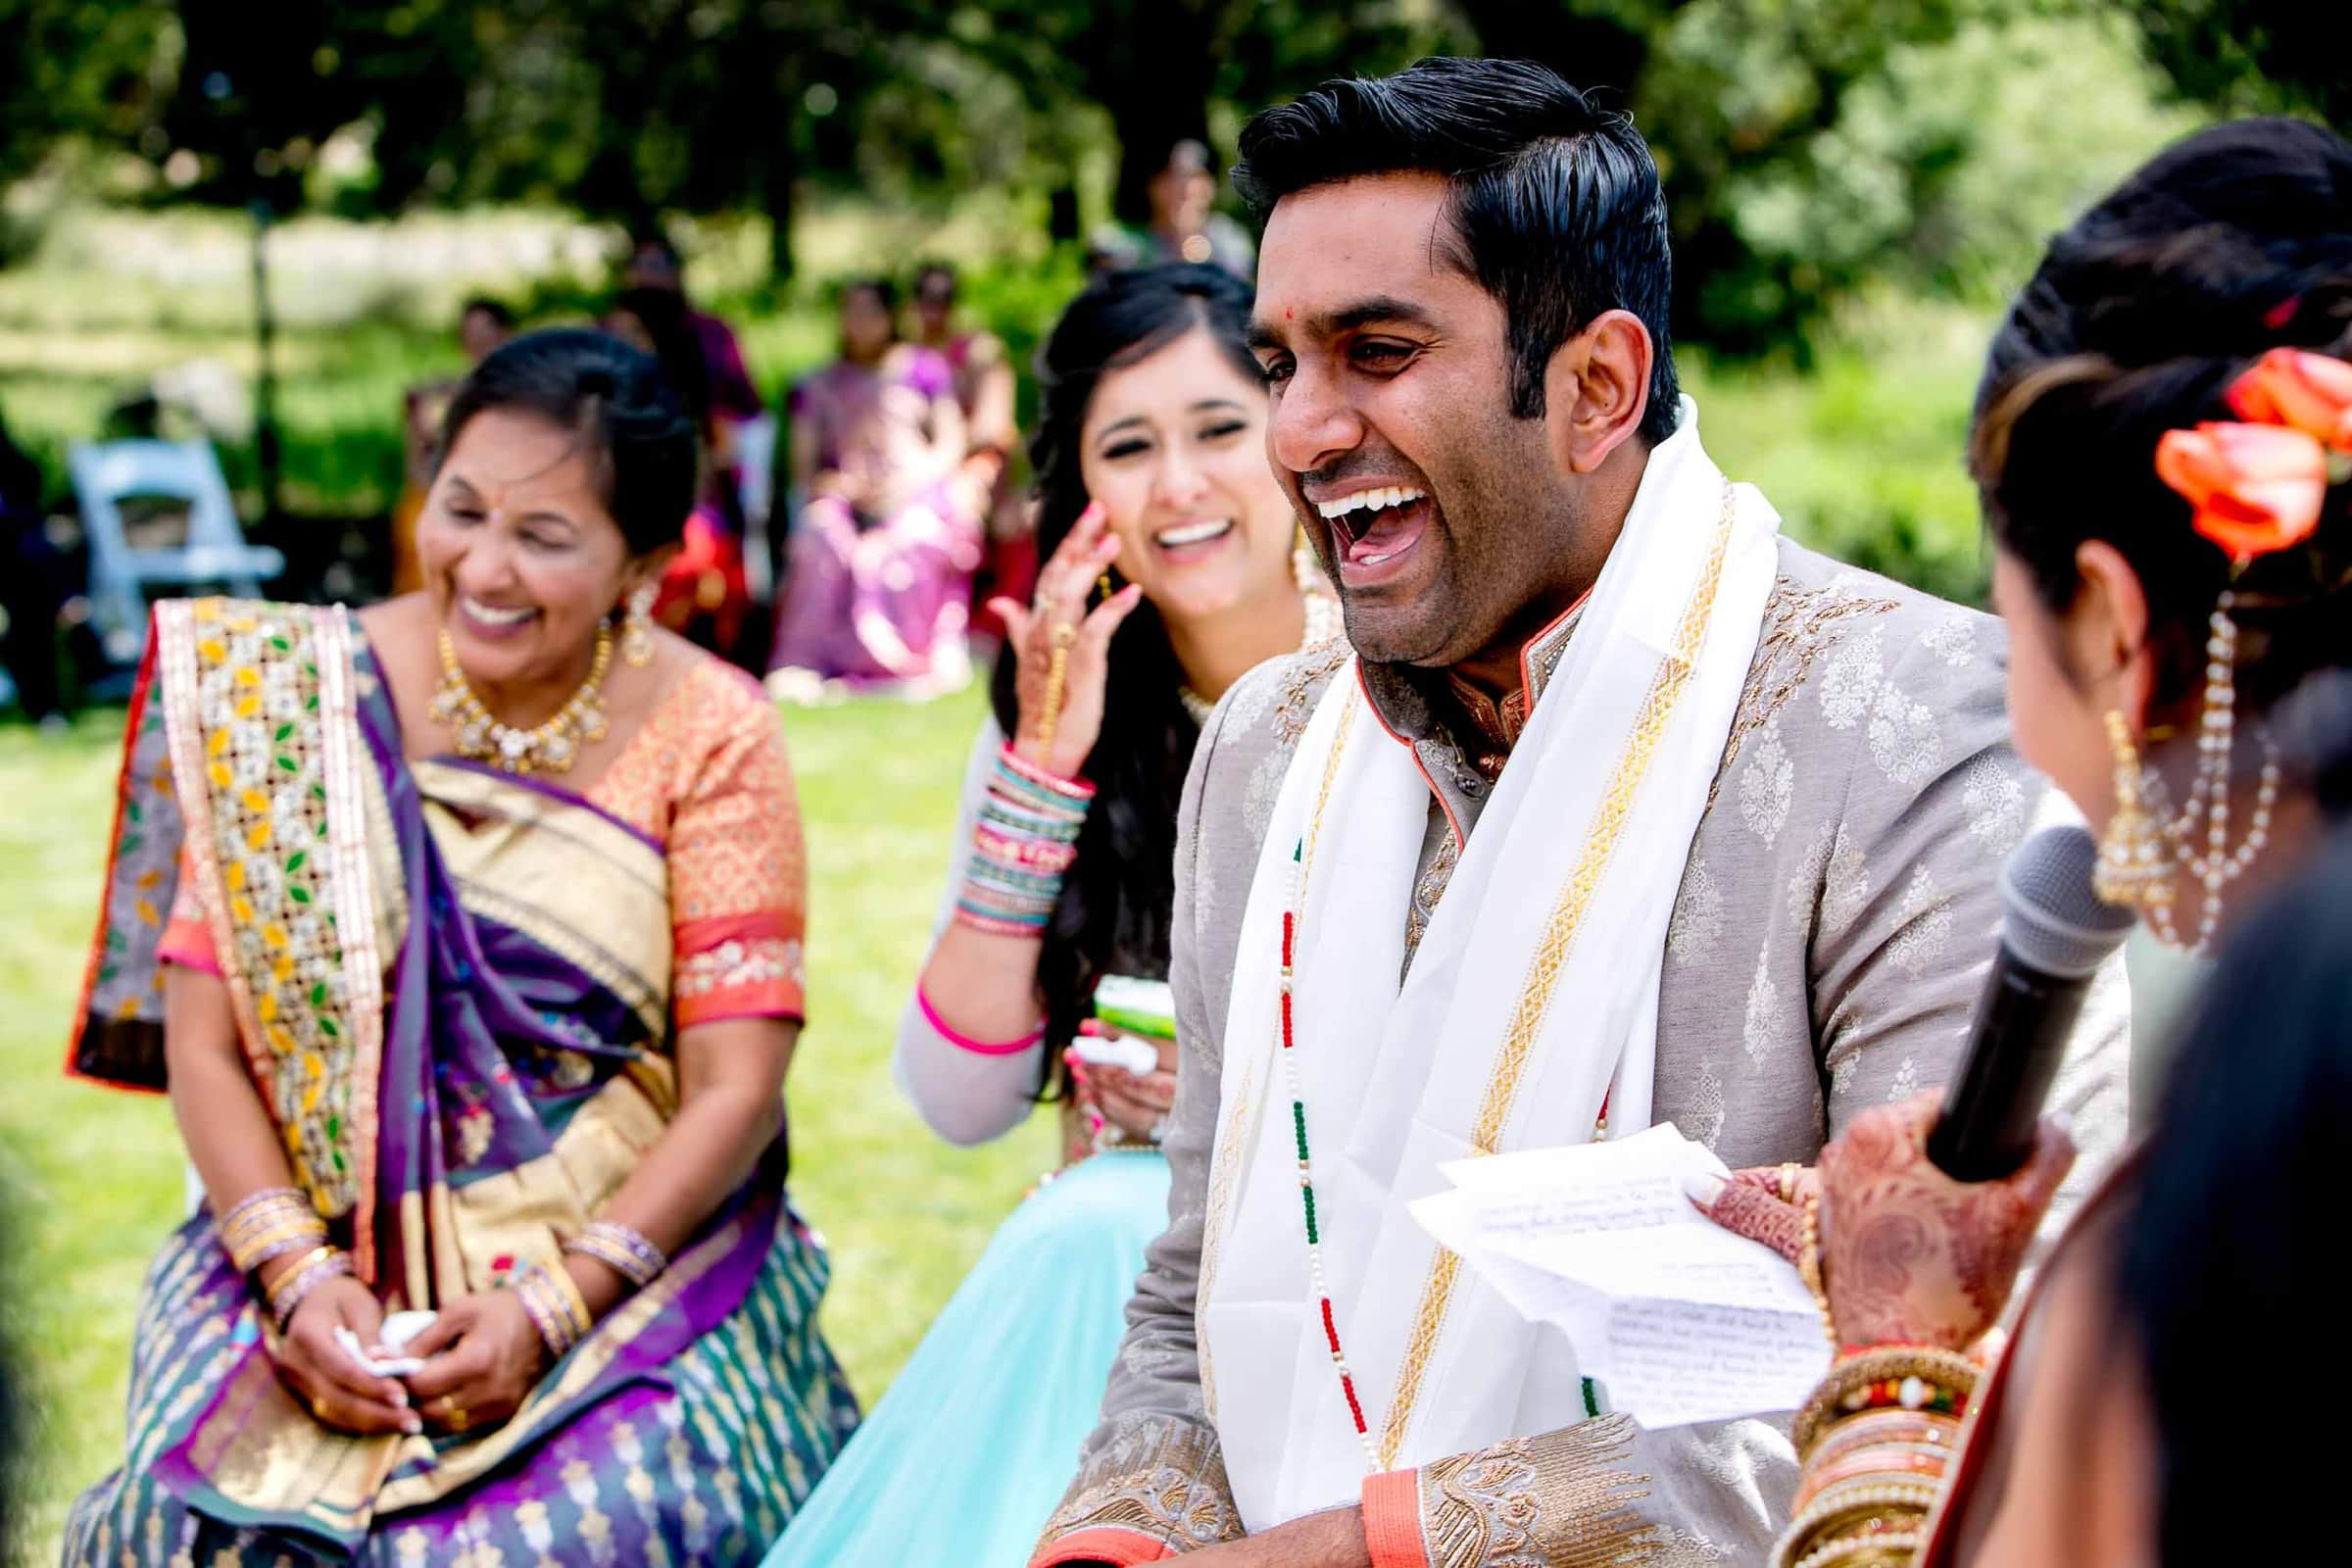 Happy photo of groom during an Indian Sunriver Resort wedding in Bend Oregon in Central Oregon.